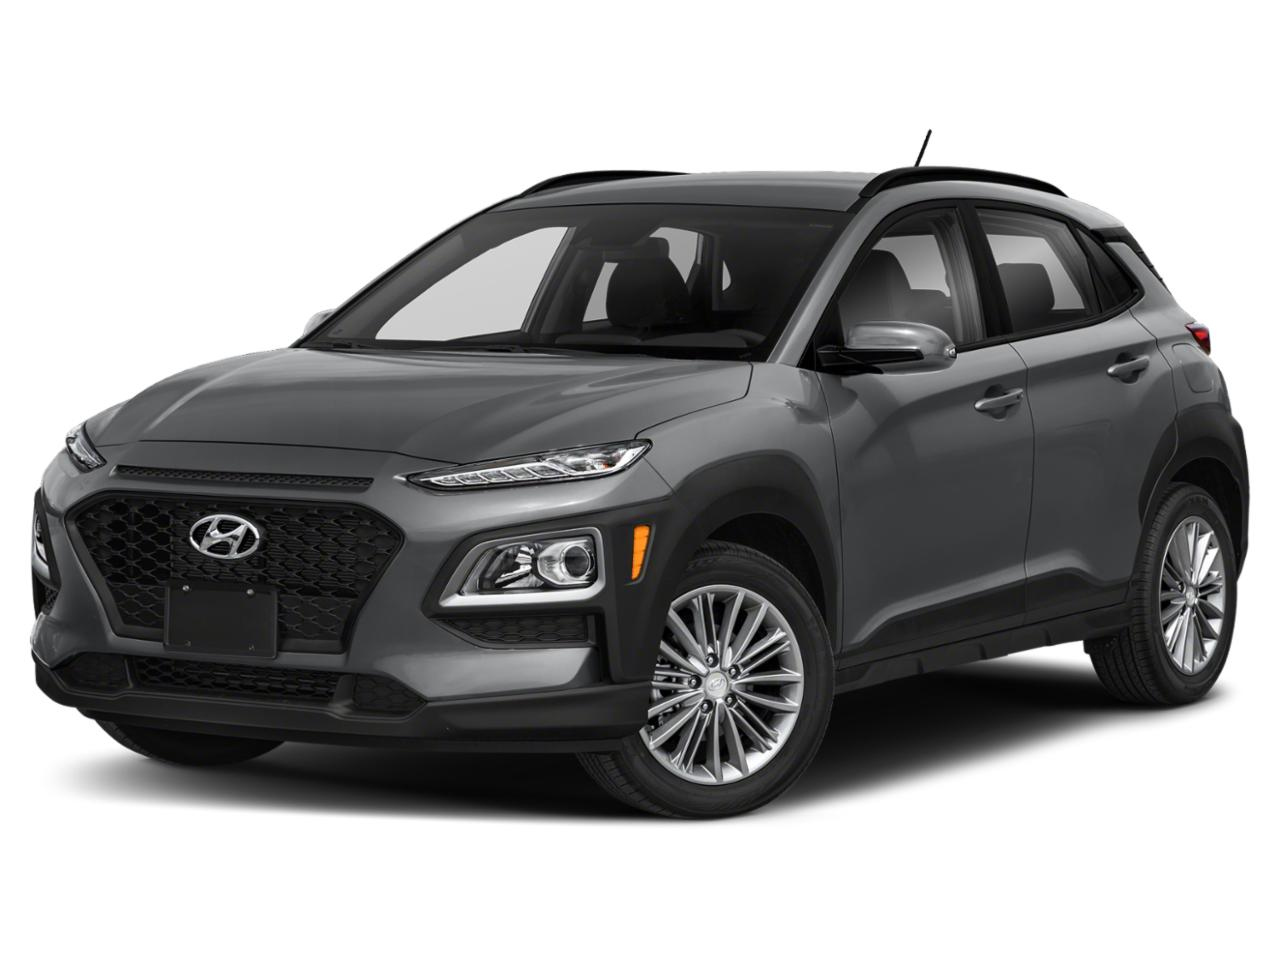 2019 Hyundai Kona Vehicle Photo in Broussard, LA 70518